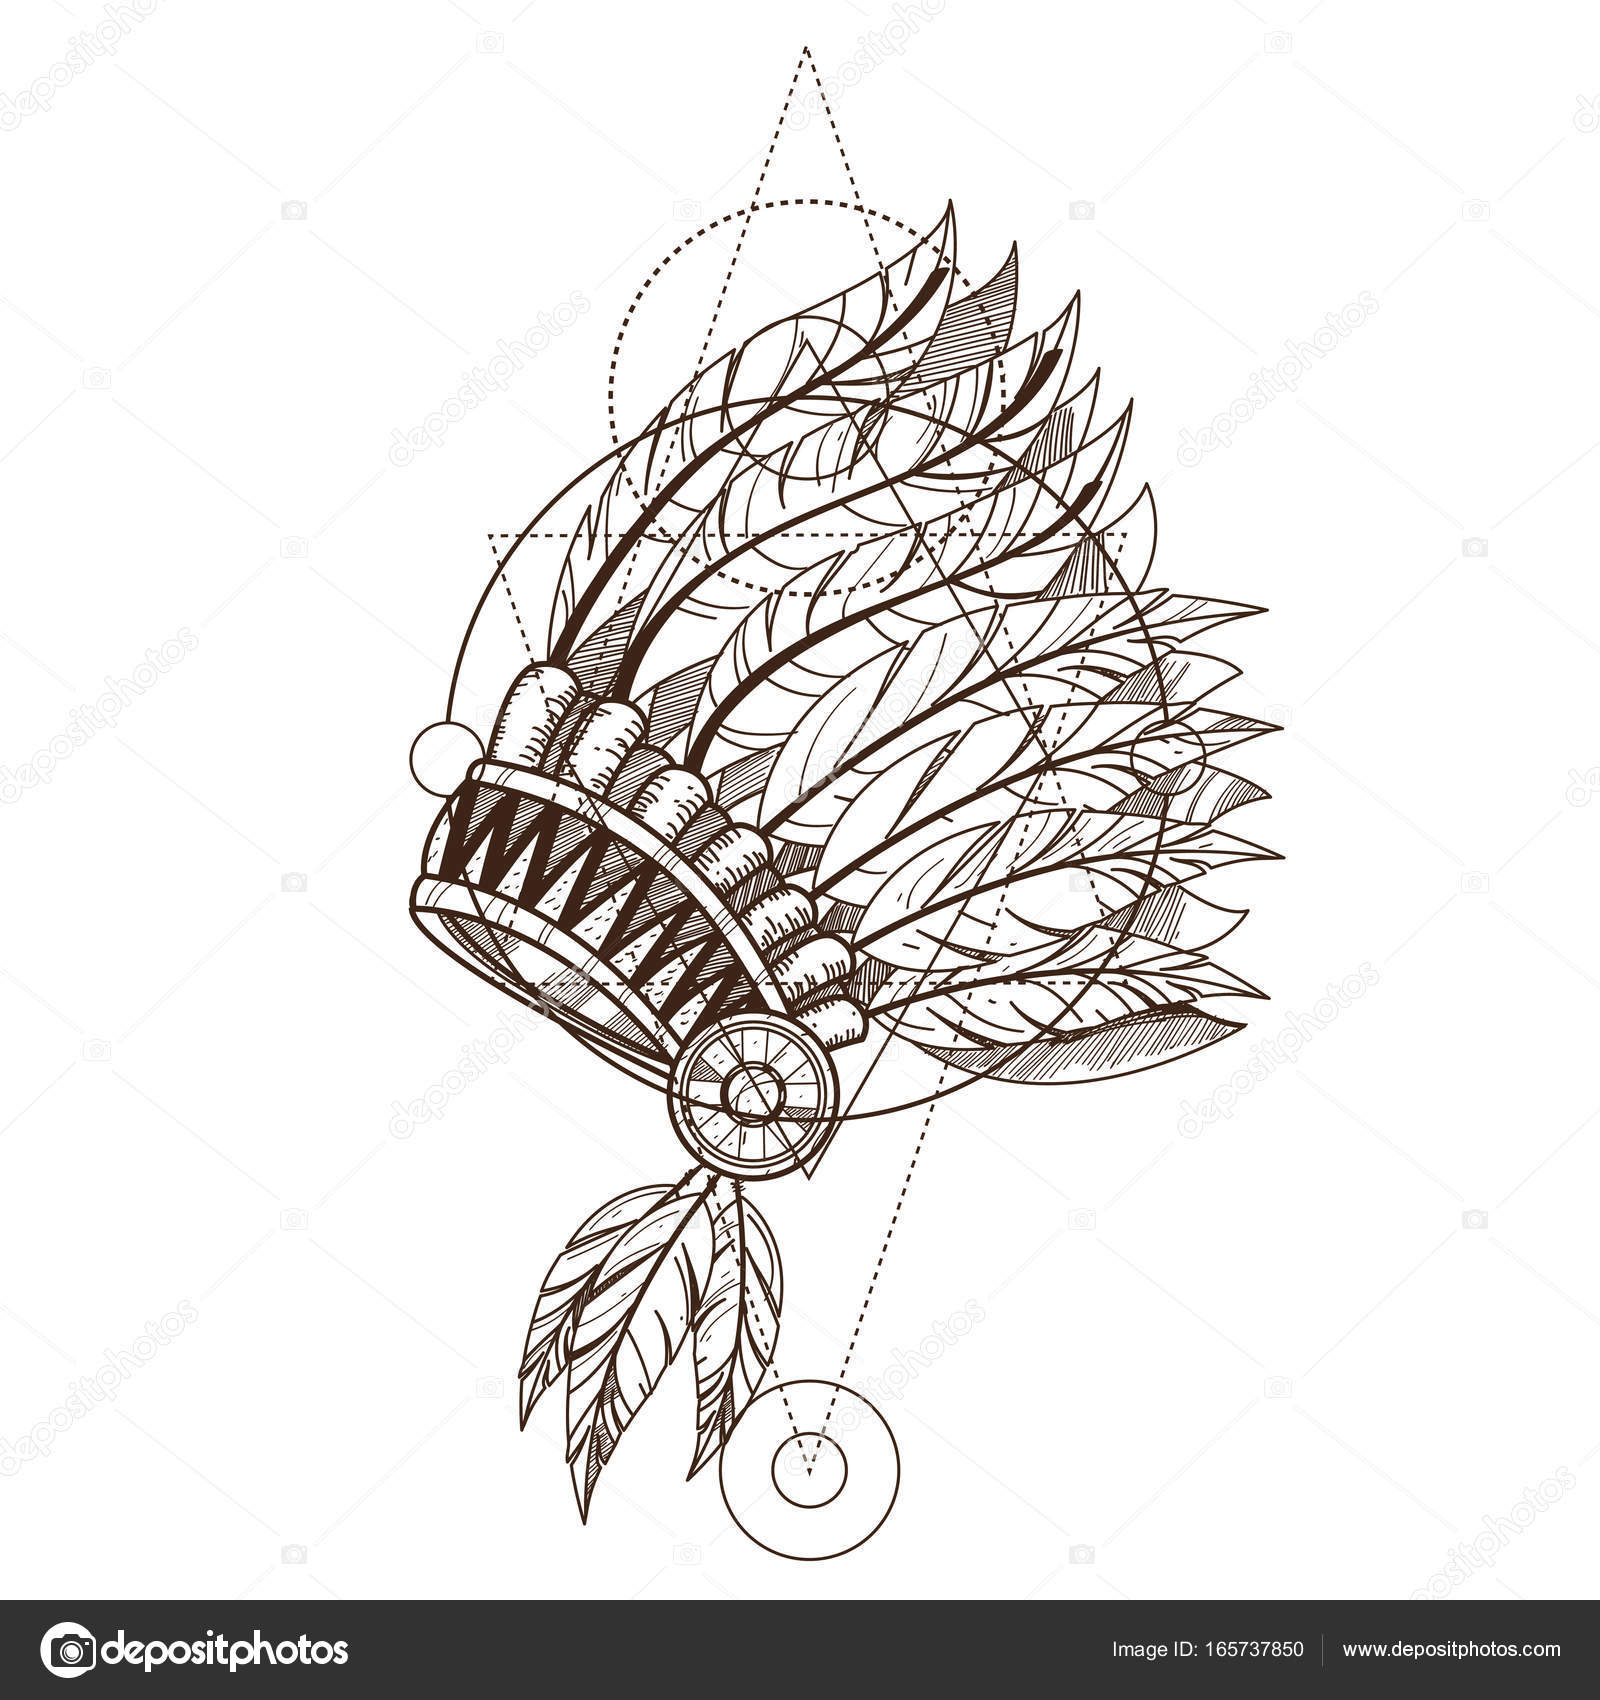 35139c0f8 Native American indian headdress with feathers. Monochrome vector  illustration isolated on white background.